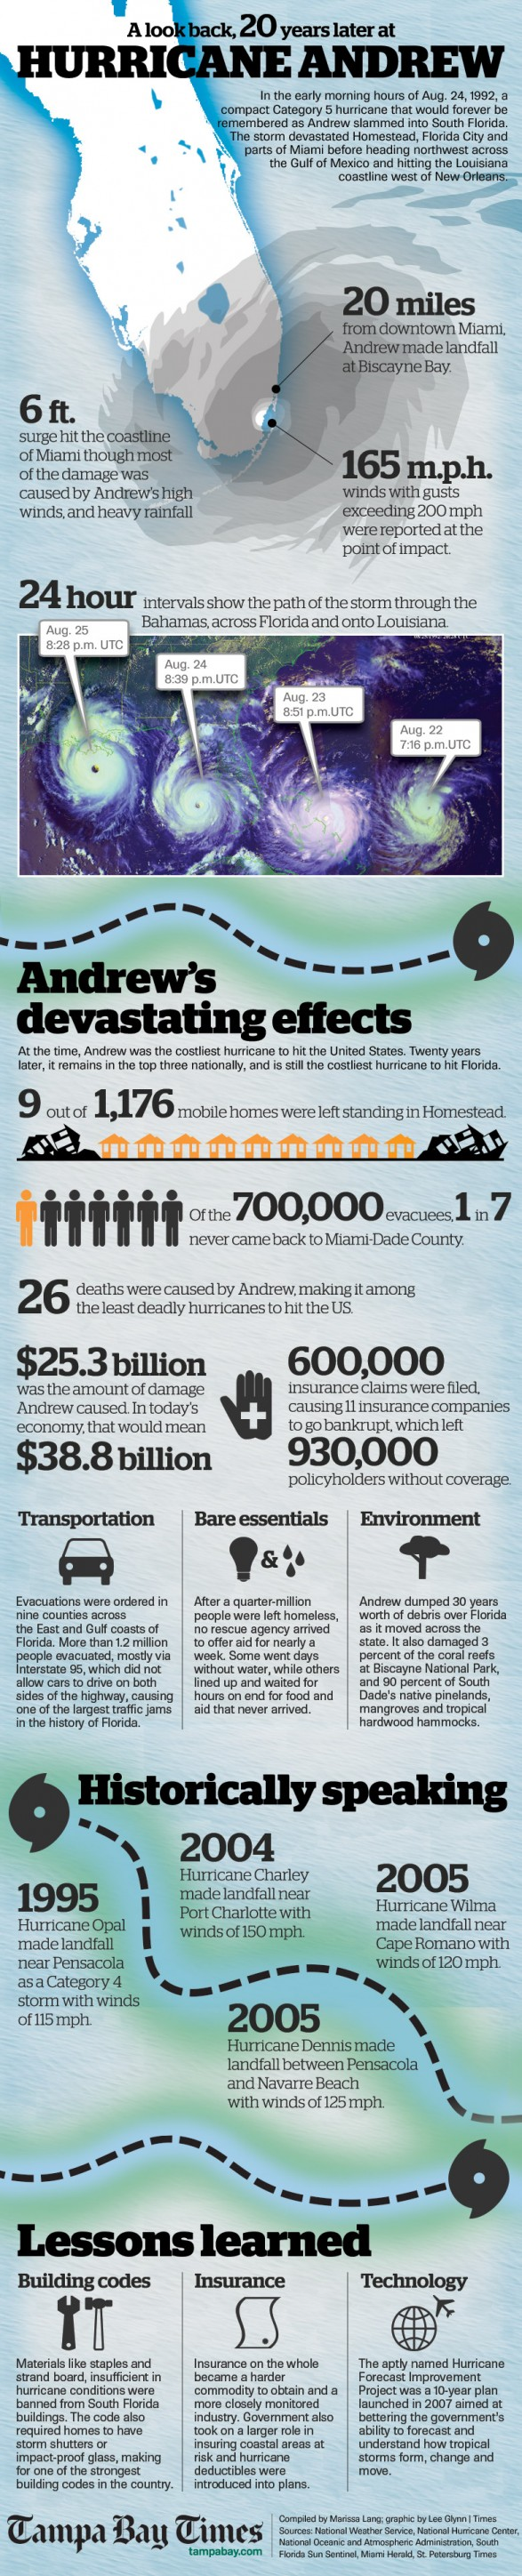 Hurricane-Andrew-Facts-infographic